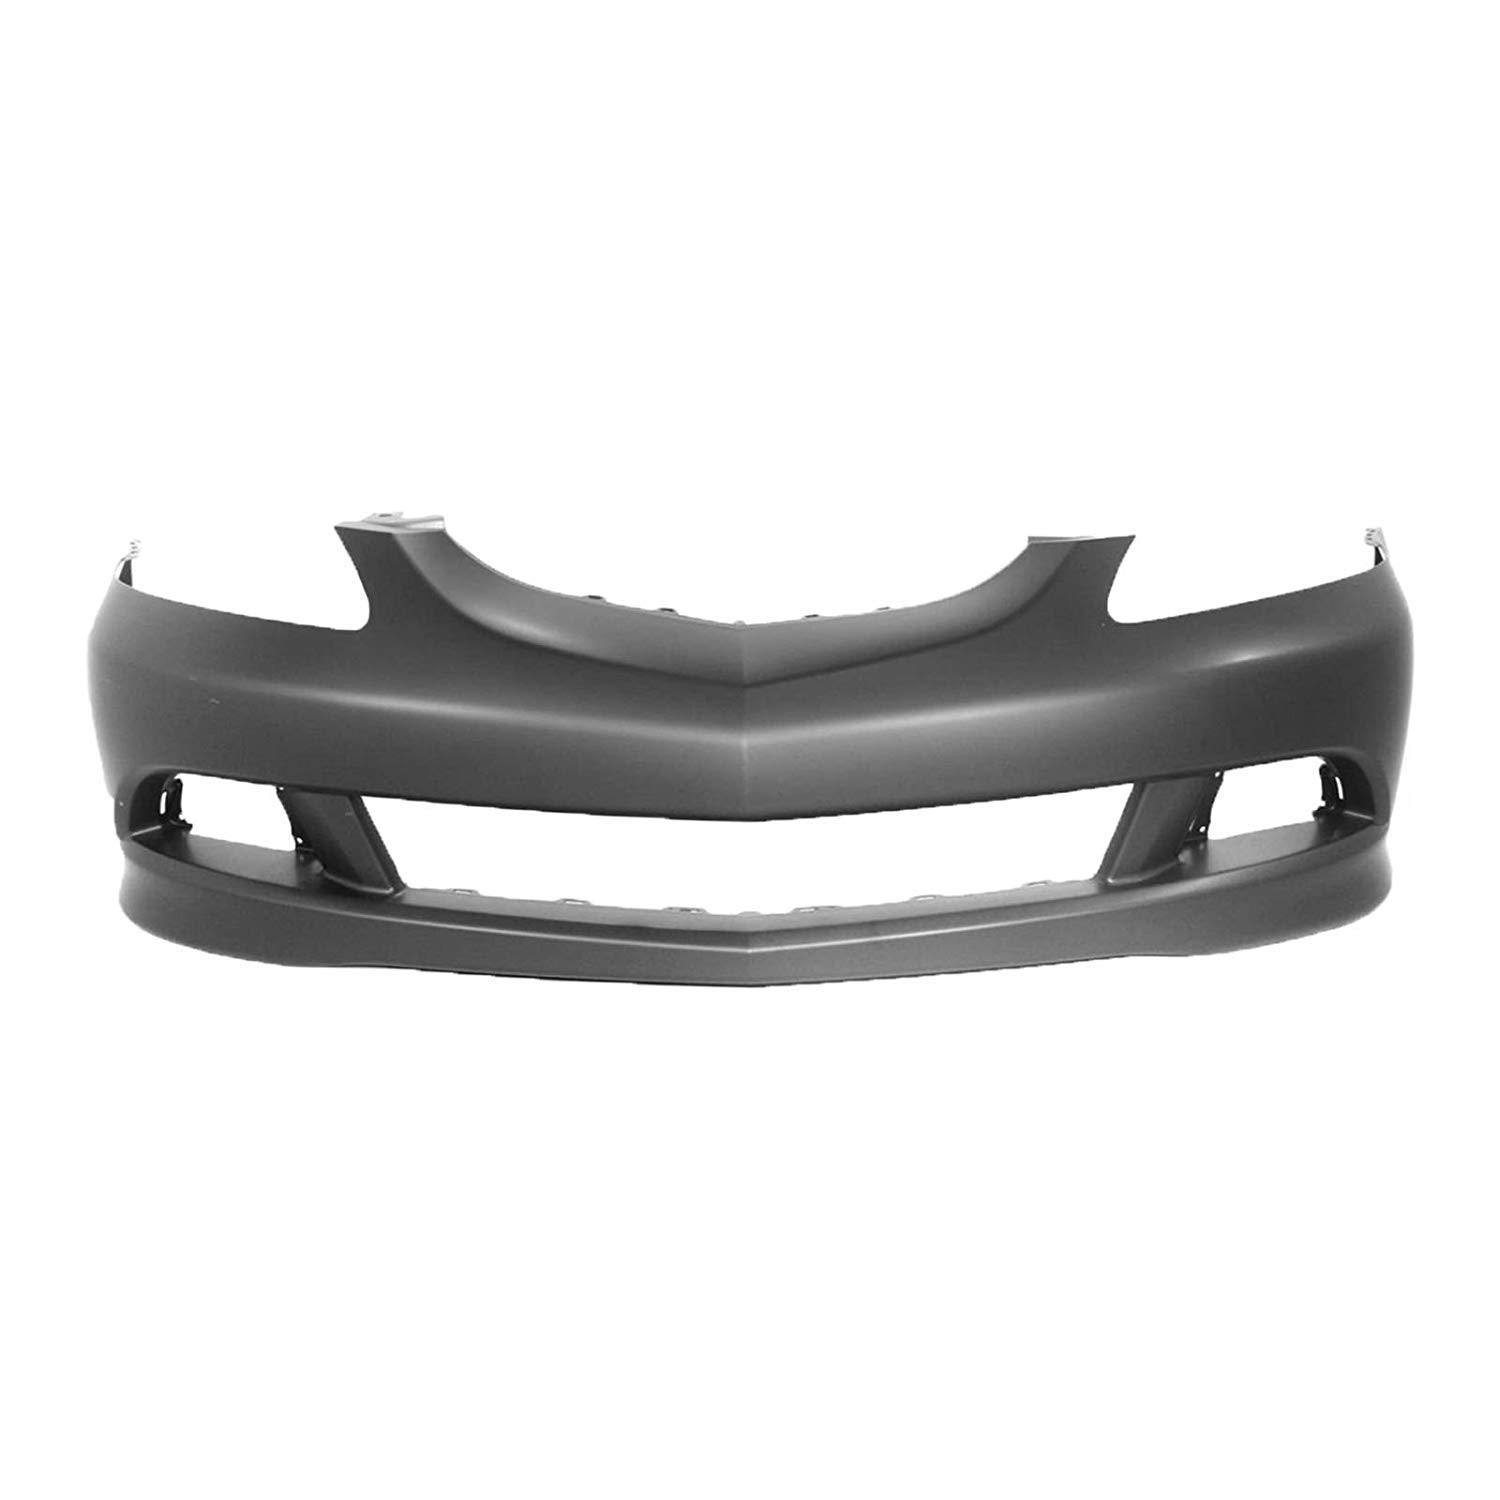 Fits Acura RSX 2005-2006 New Front Bumper Primed Free